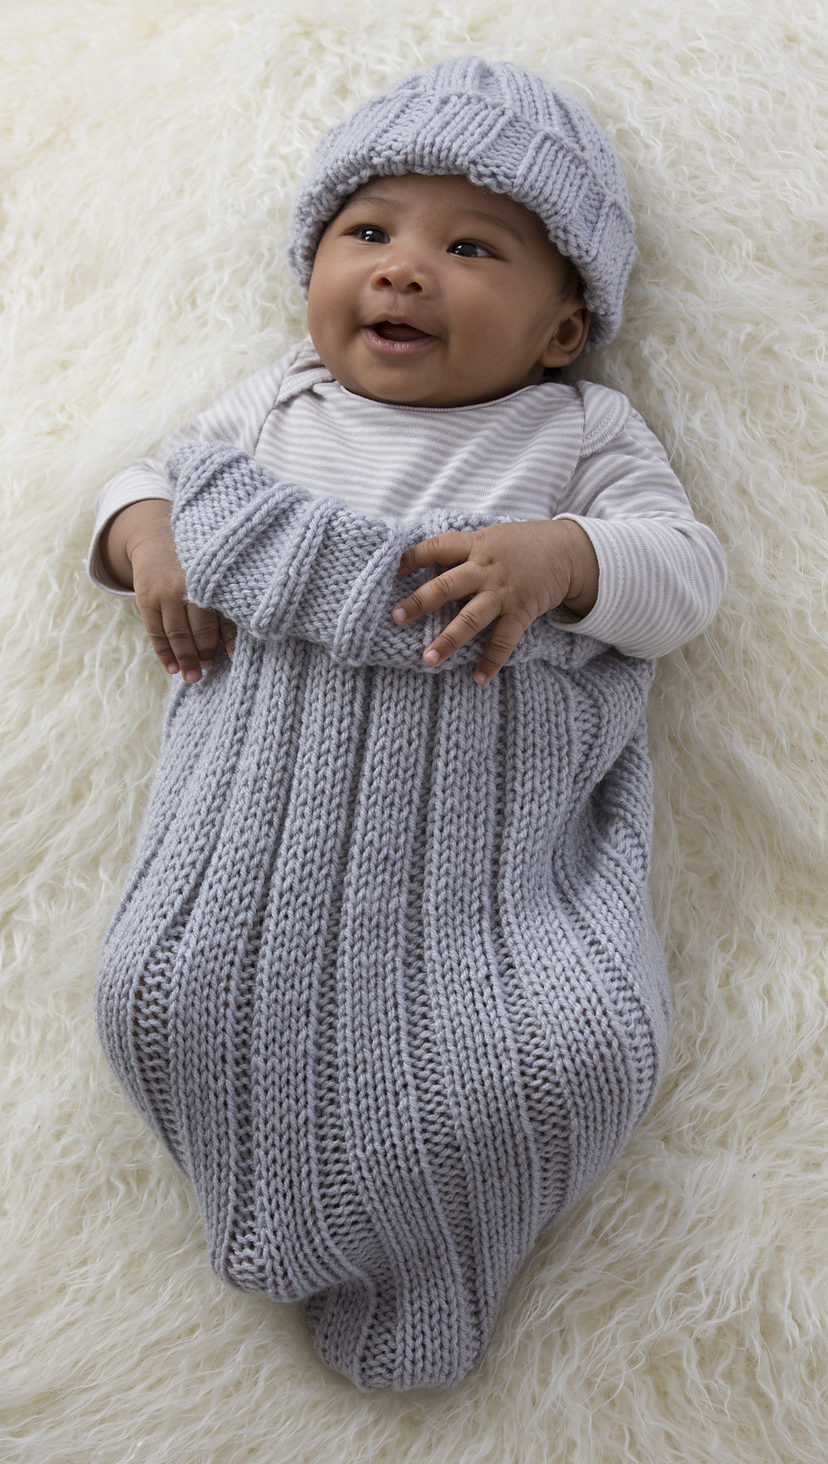 New Baby Cocoon Snuggly Sleep Sack Wrap Knitting Patterns Free Knitting Patterns for Children Of Awesome 47 Models Free Knitting Patterns for Children